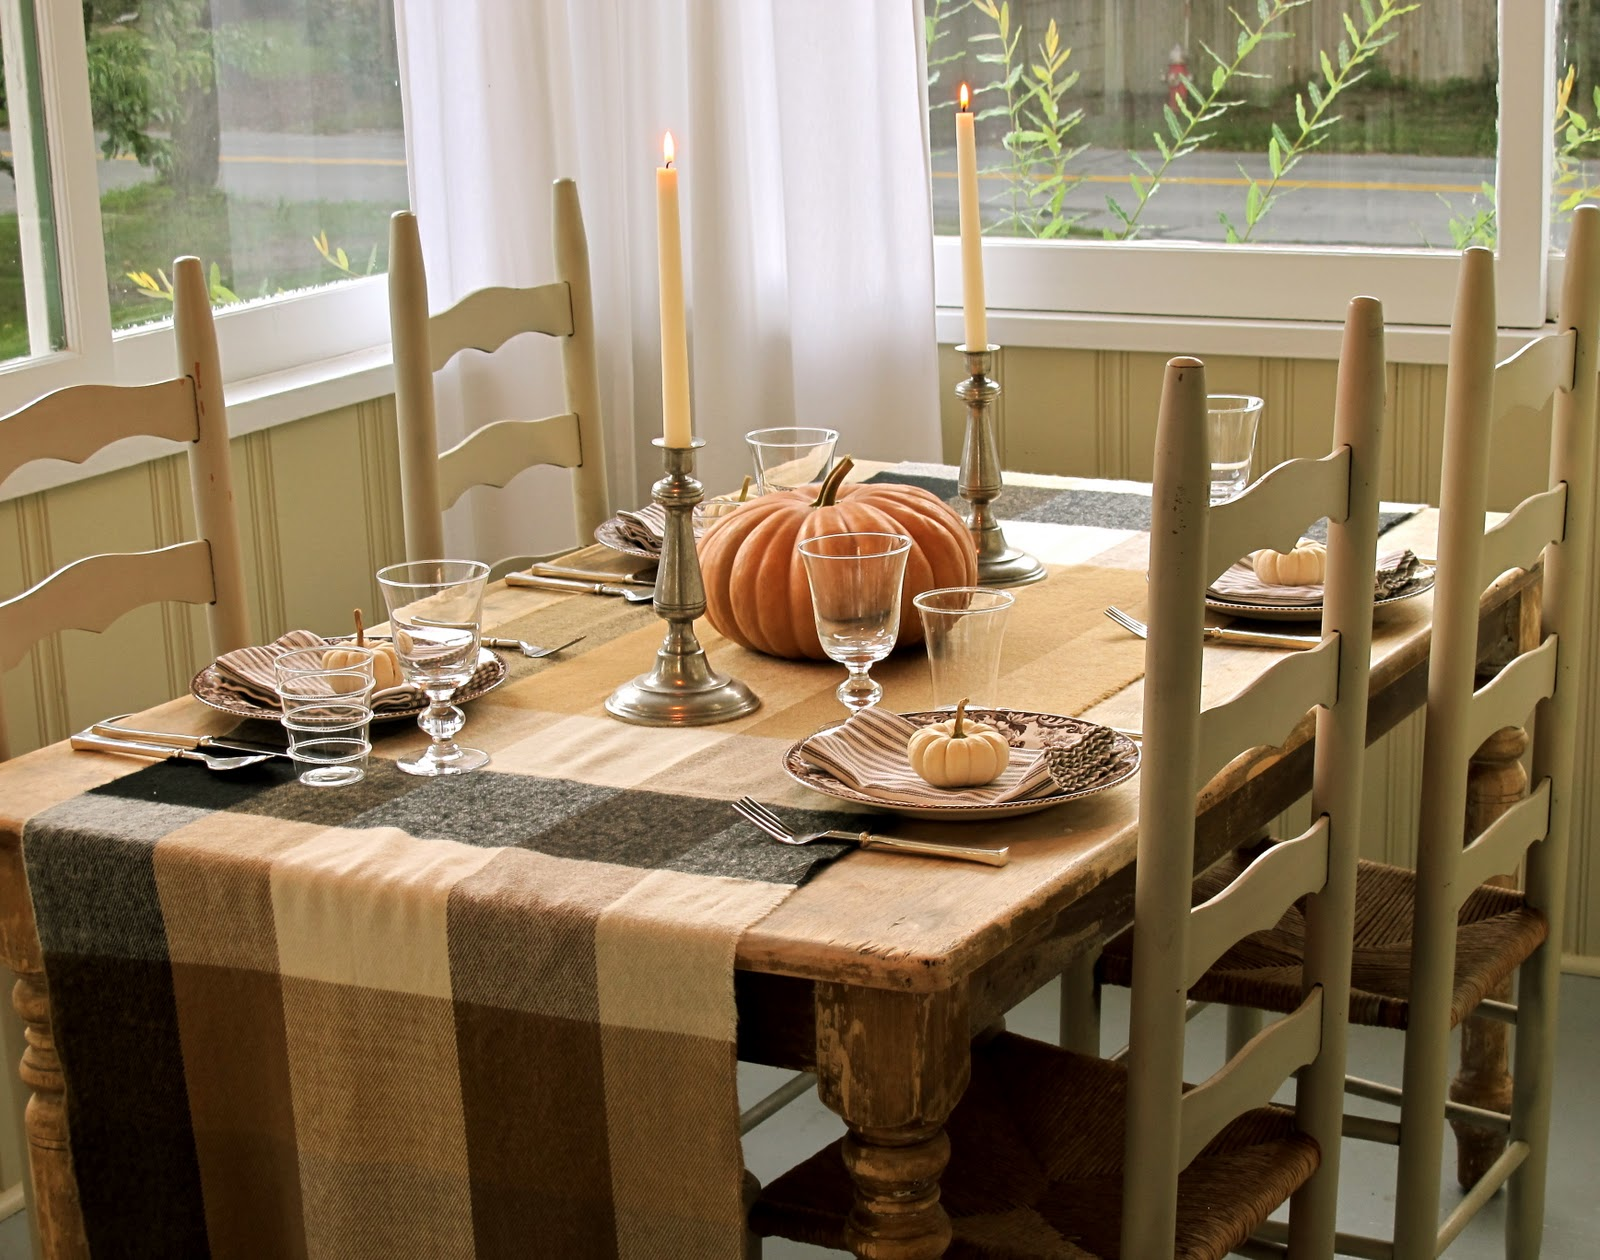 Dinner party table setting the cummings company for Home dinner table decorations